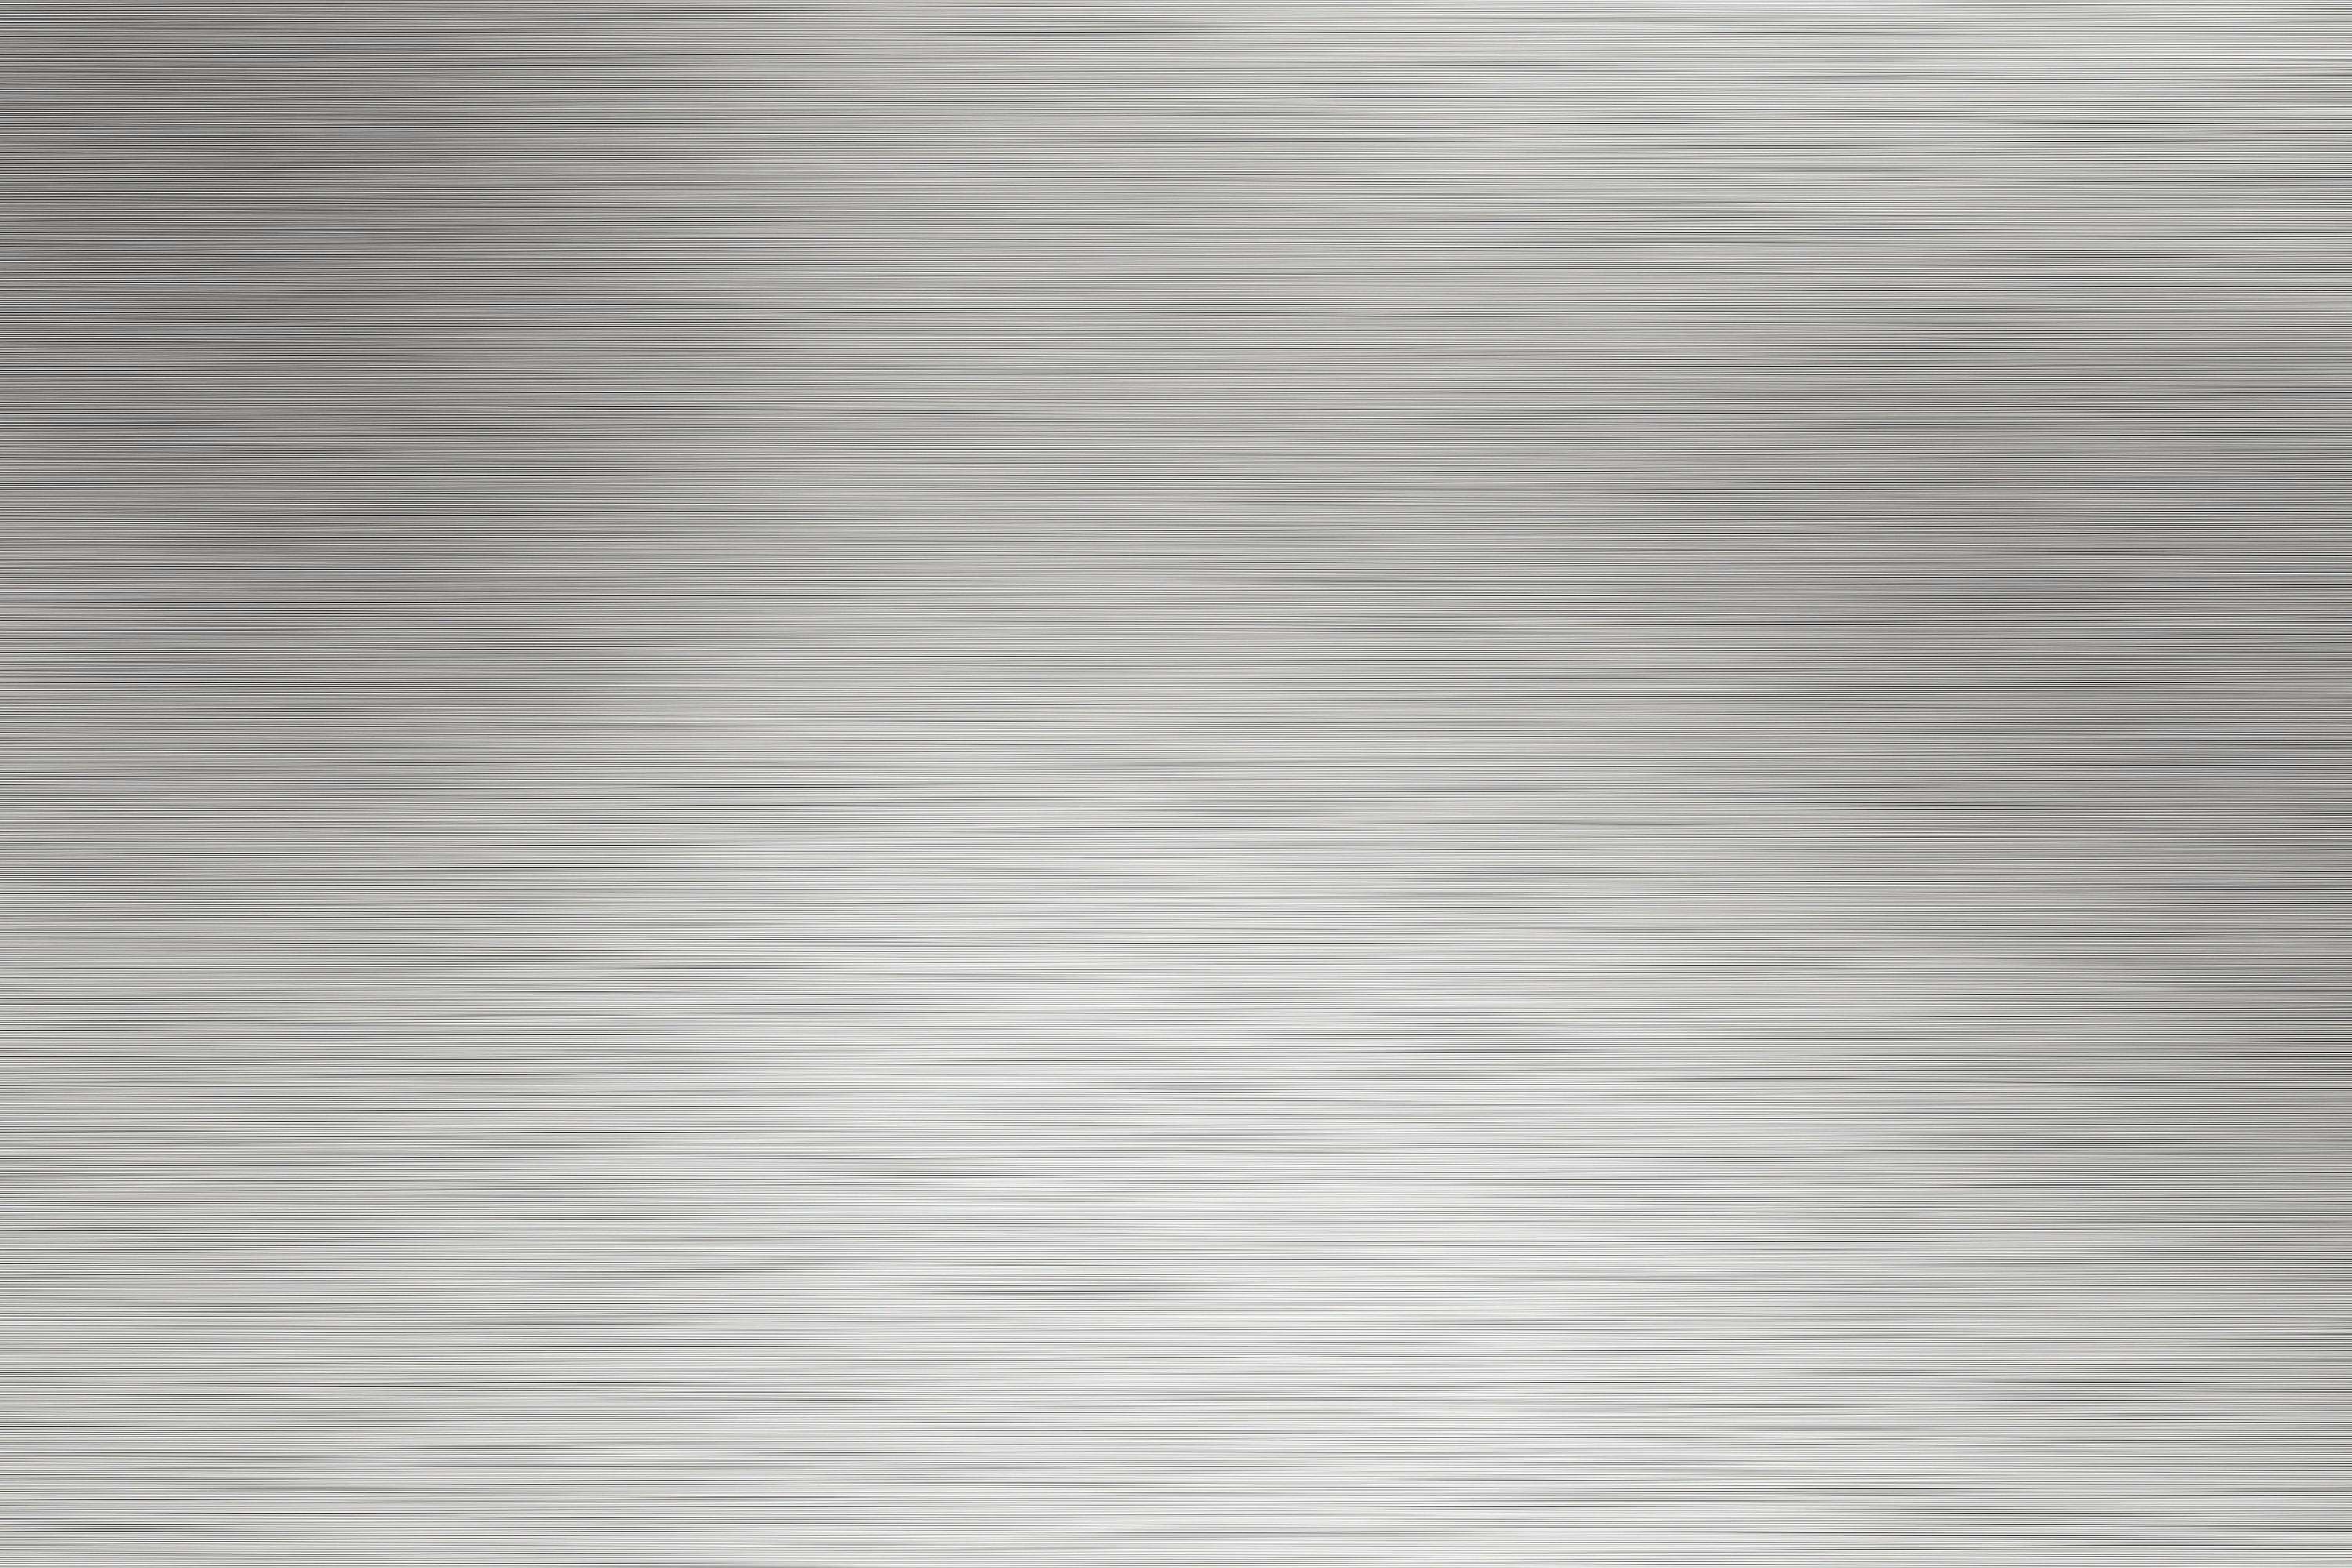 Silver Background Powerpoint Backgrounds For Free Powerpoint